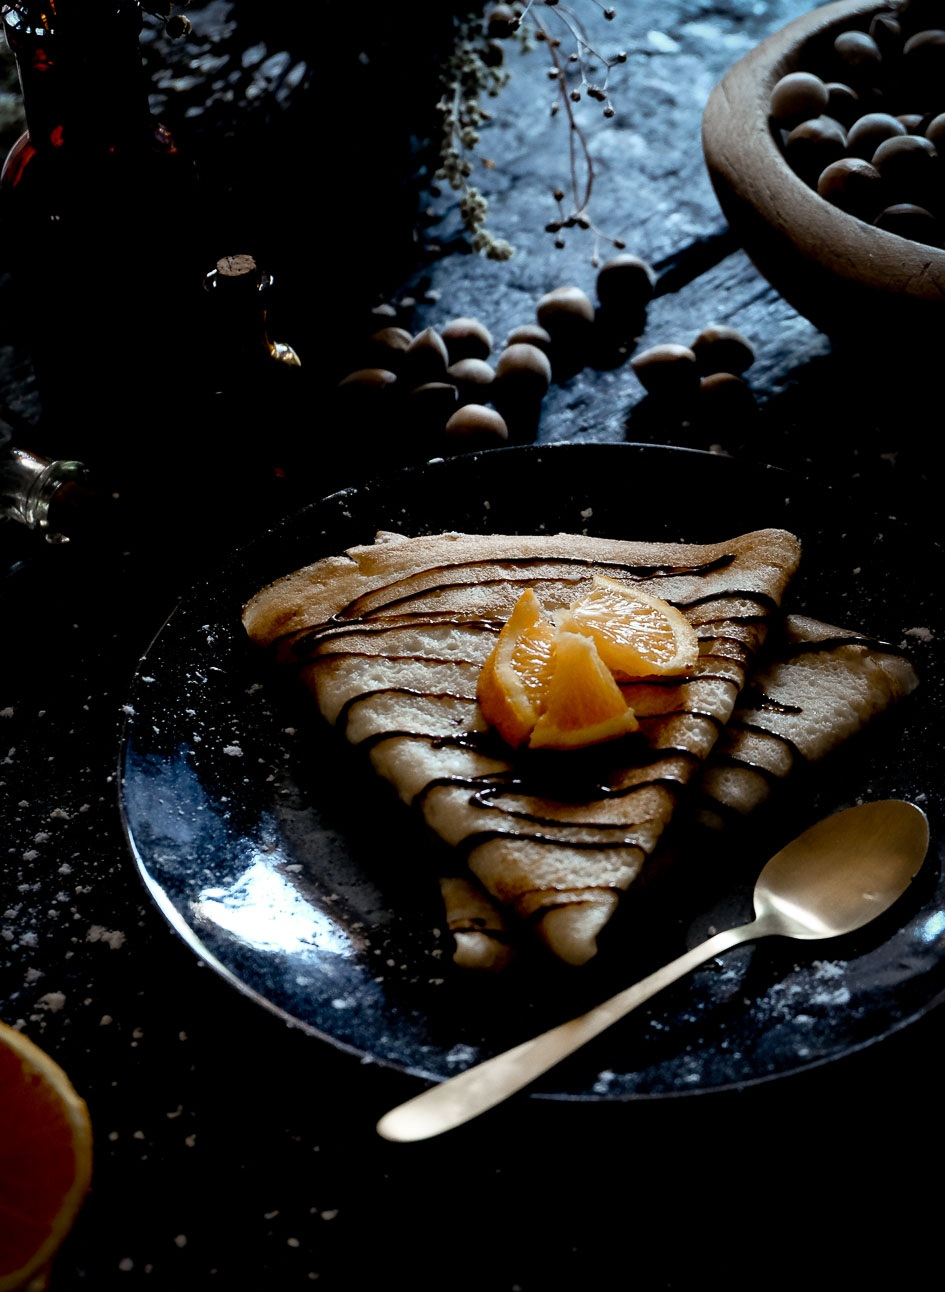 Carnet+Sauvage-blog food Lille -recette crepes biere